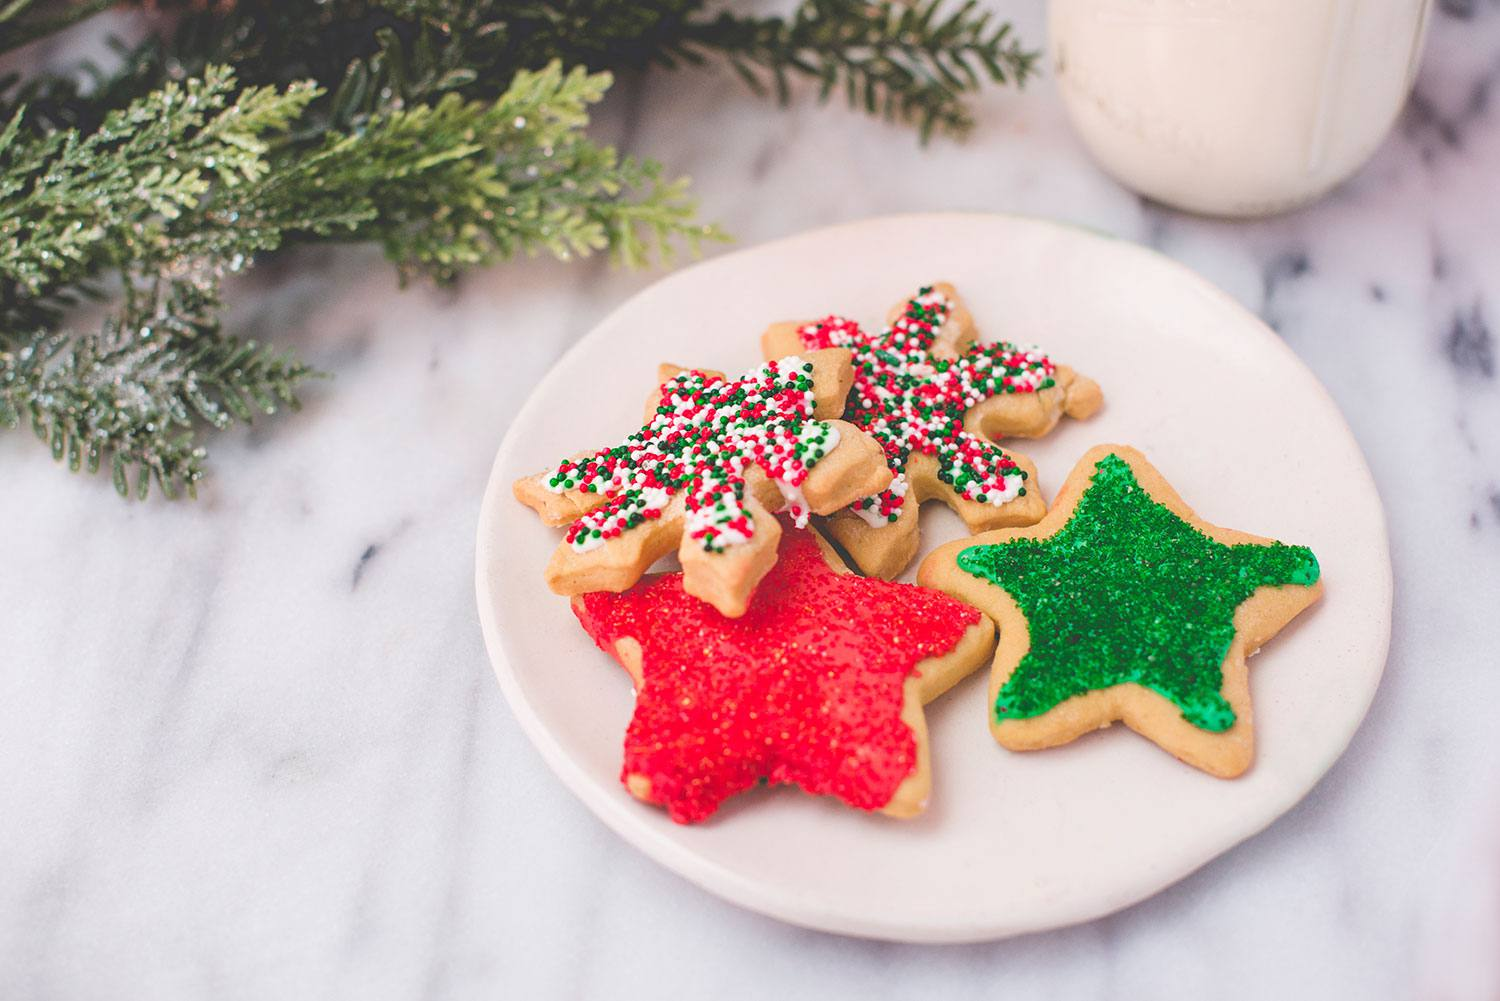 Festive Low Fat Christmas Cookies